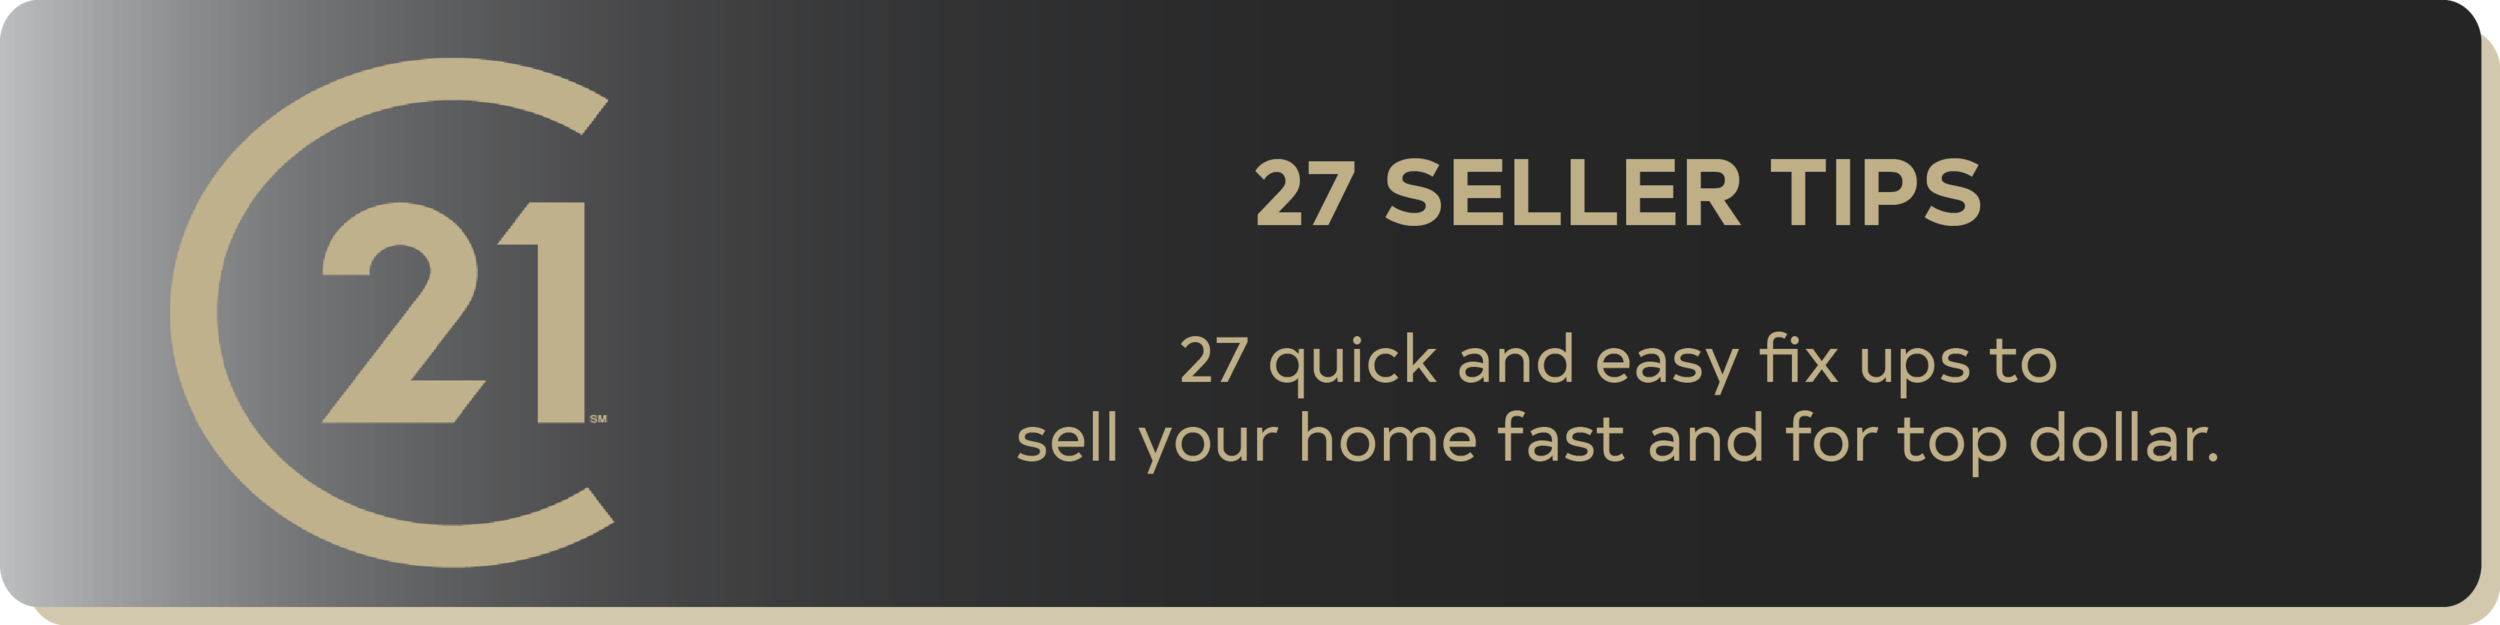 27 seller tips.png